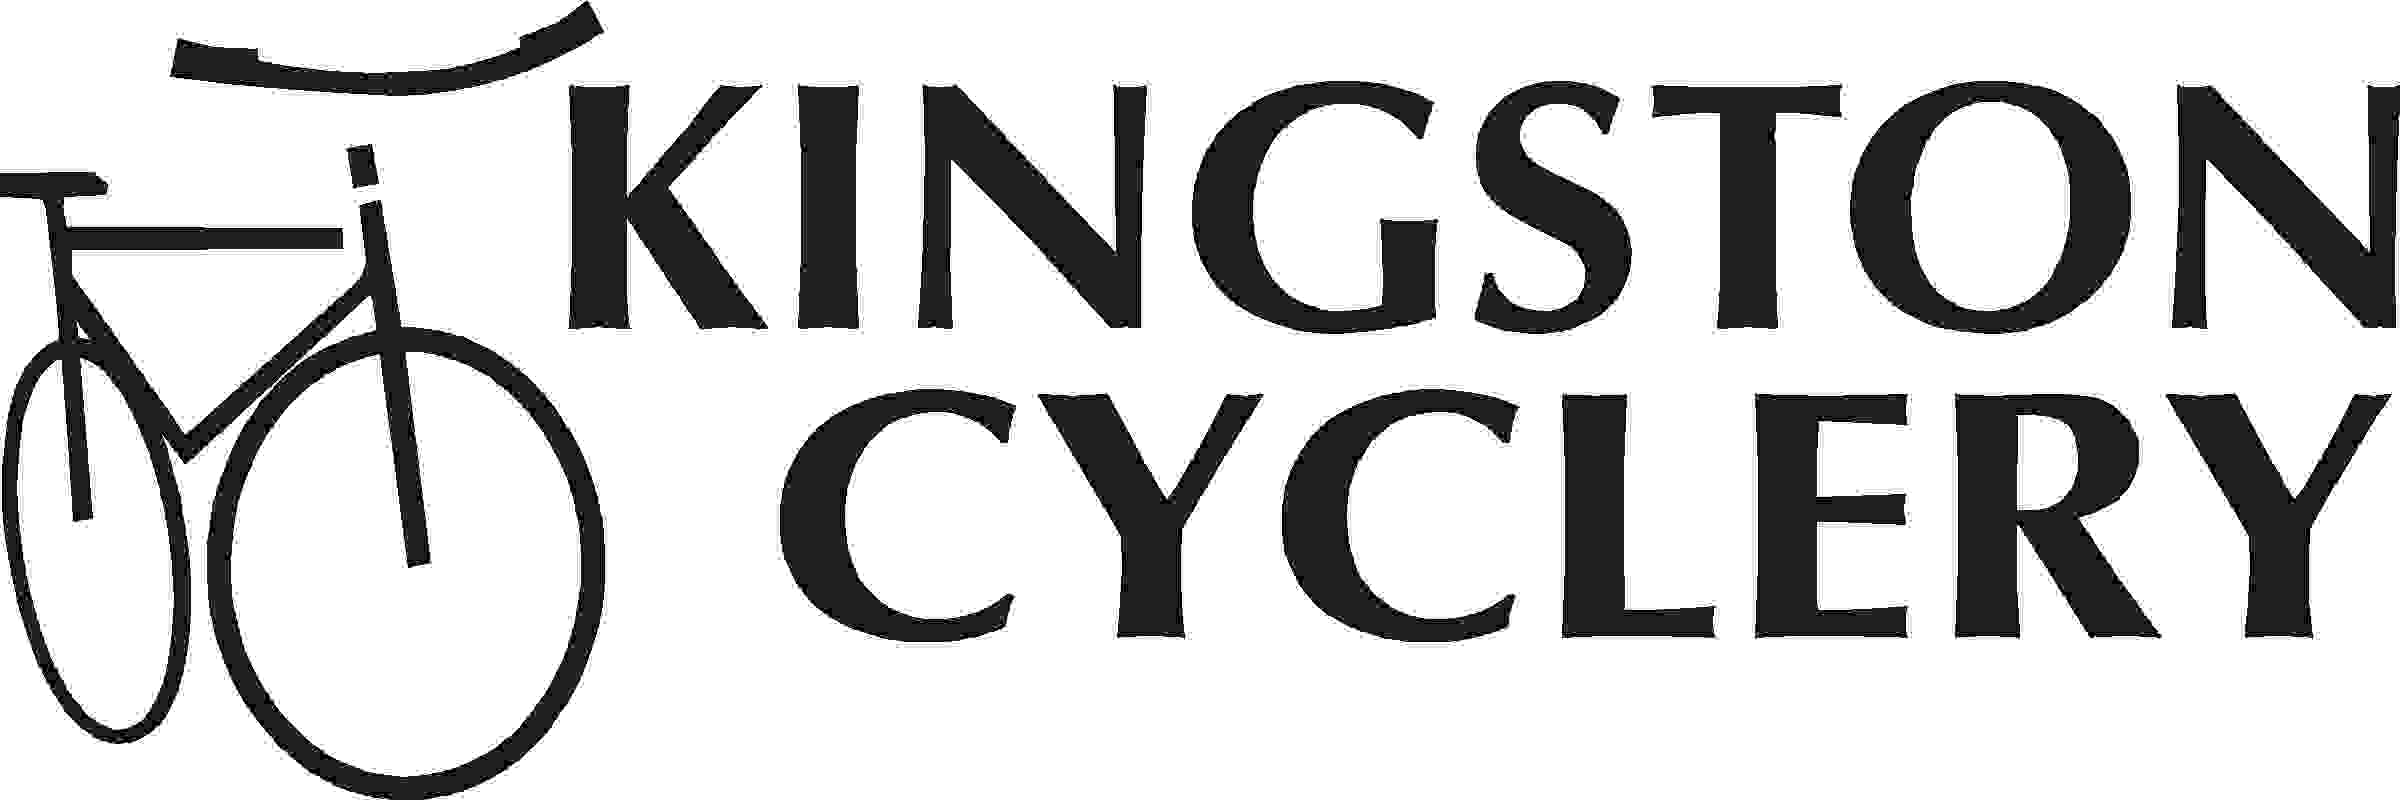 Kingston Cyclery Home Page